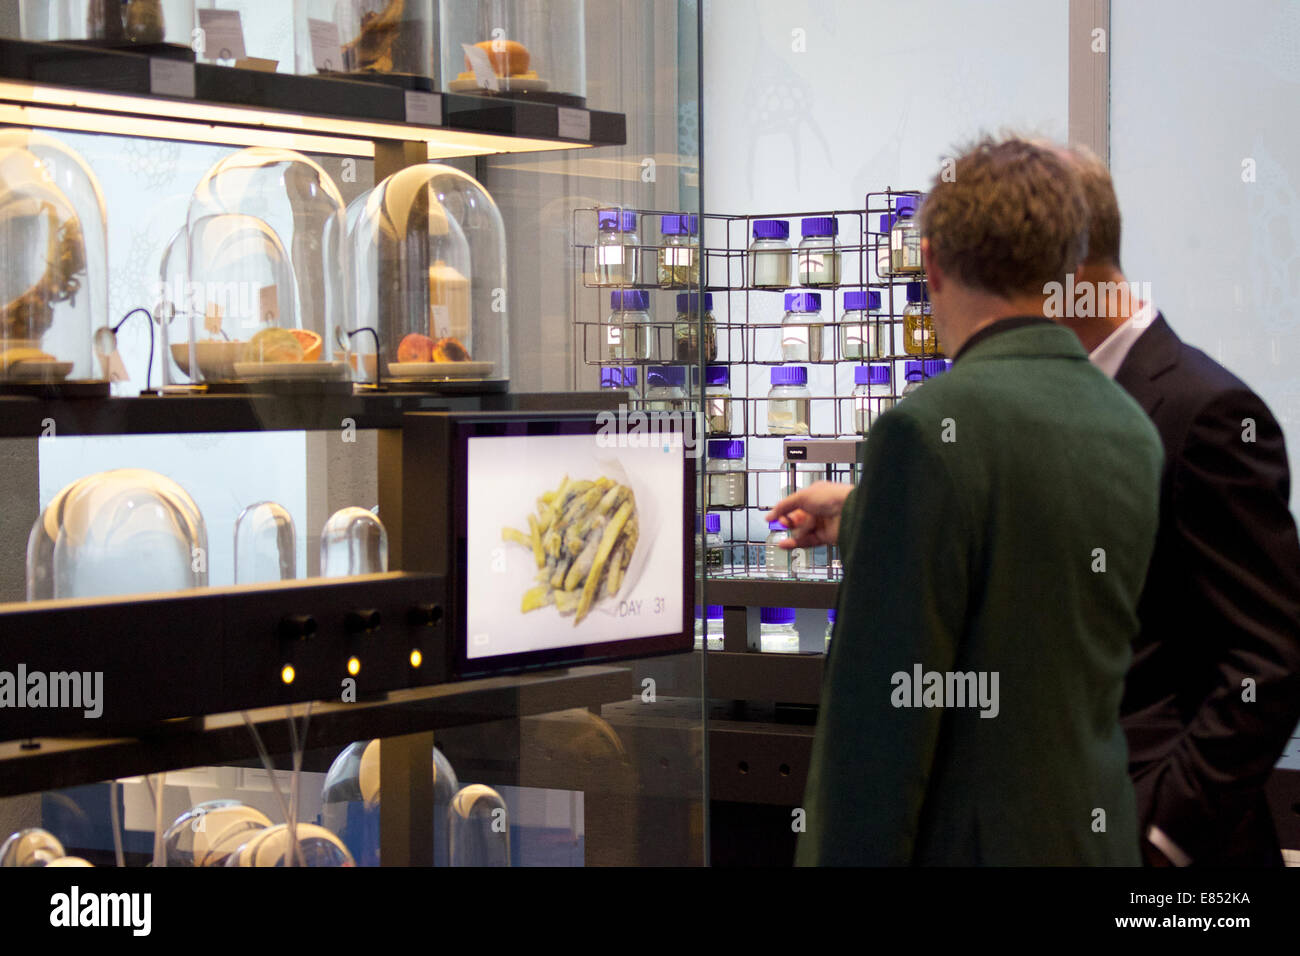 Amsterdam, Netherlands. 30th Sep, 2014. People visit the Micropia Museum, which is a museum of micro-organisms, - Stock Image